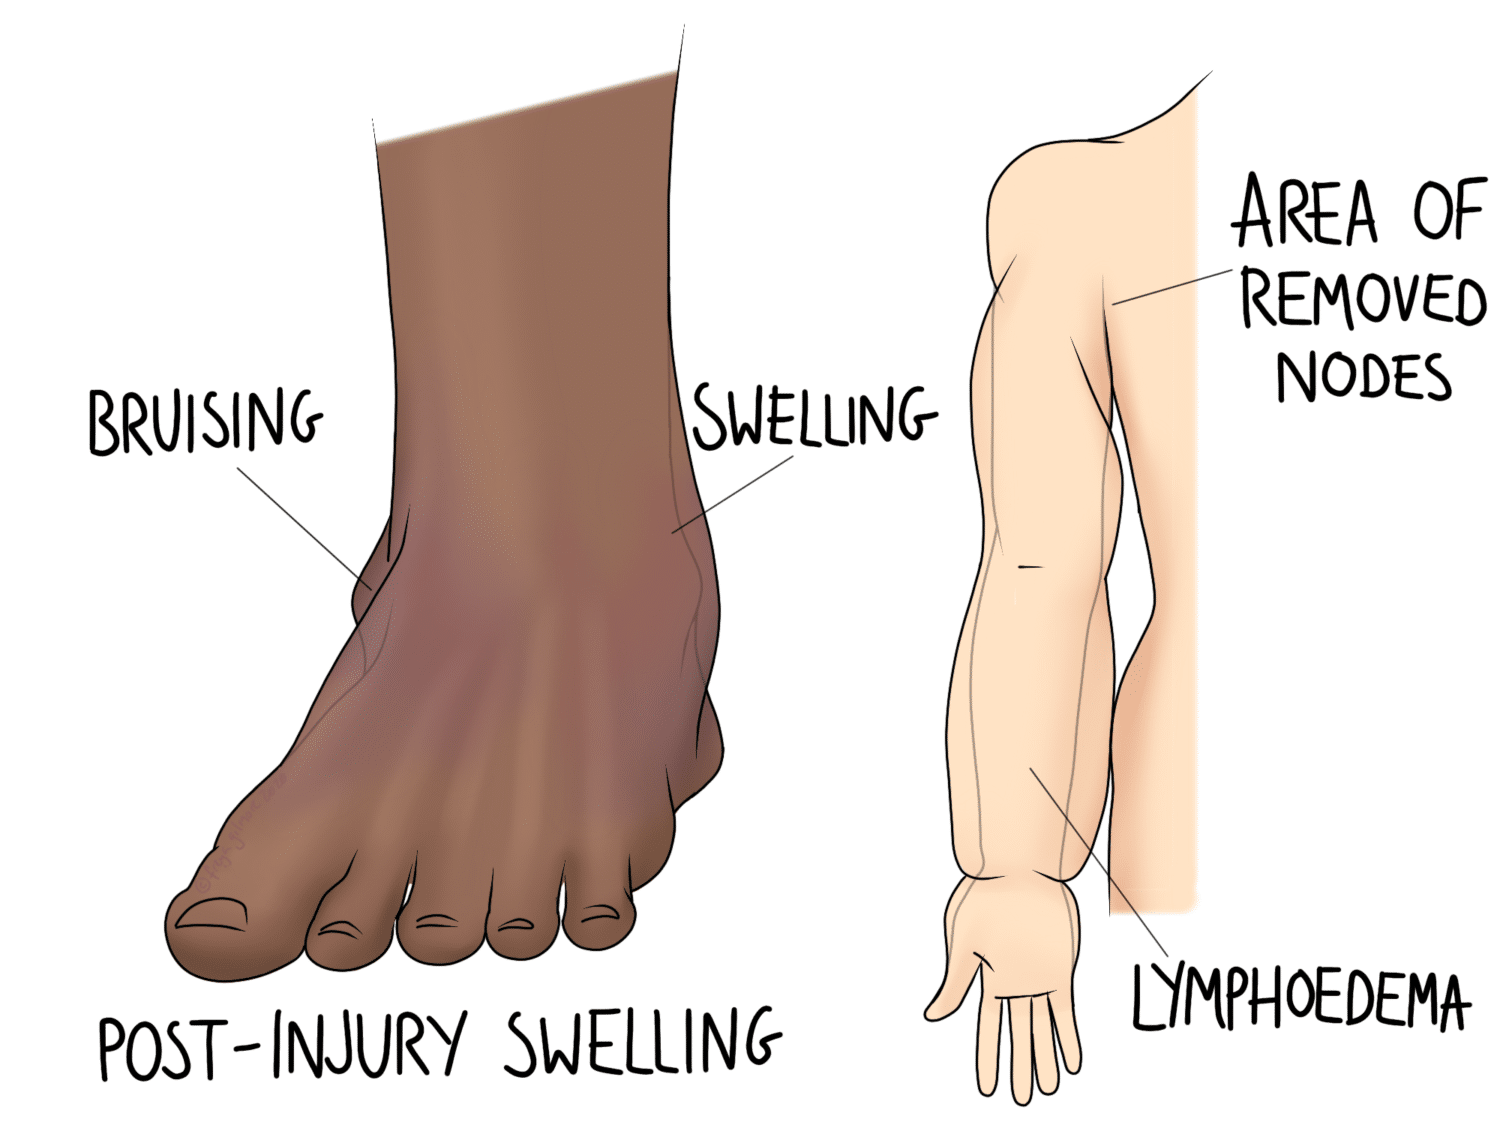 Circulatory problems - lymphoedema and post-injury swelling